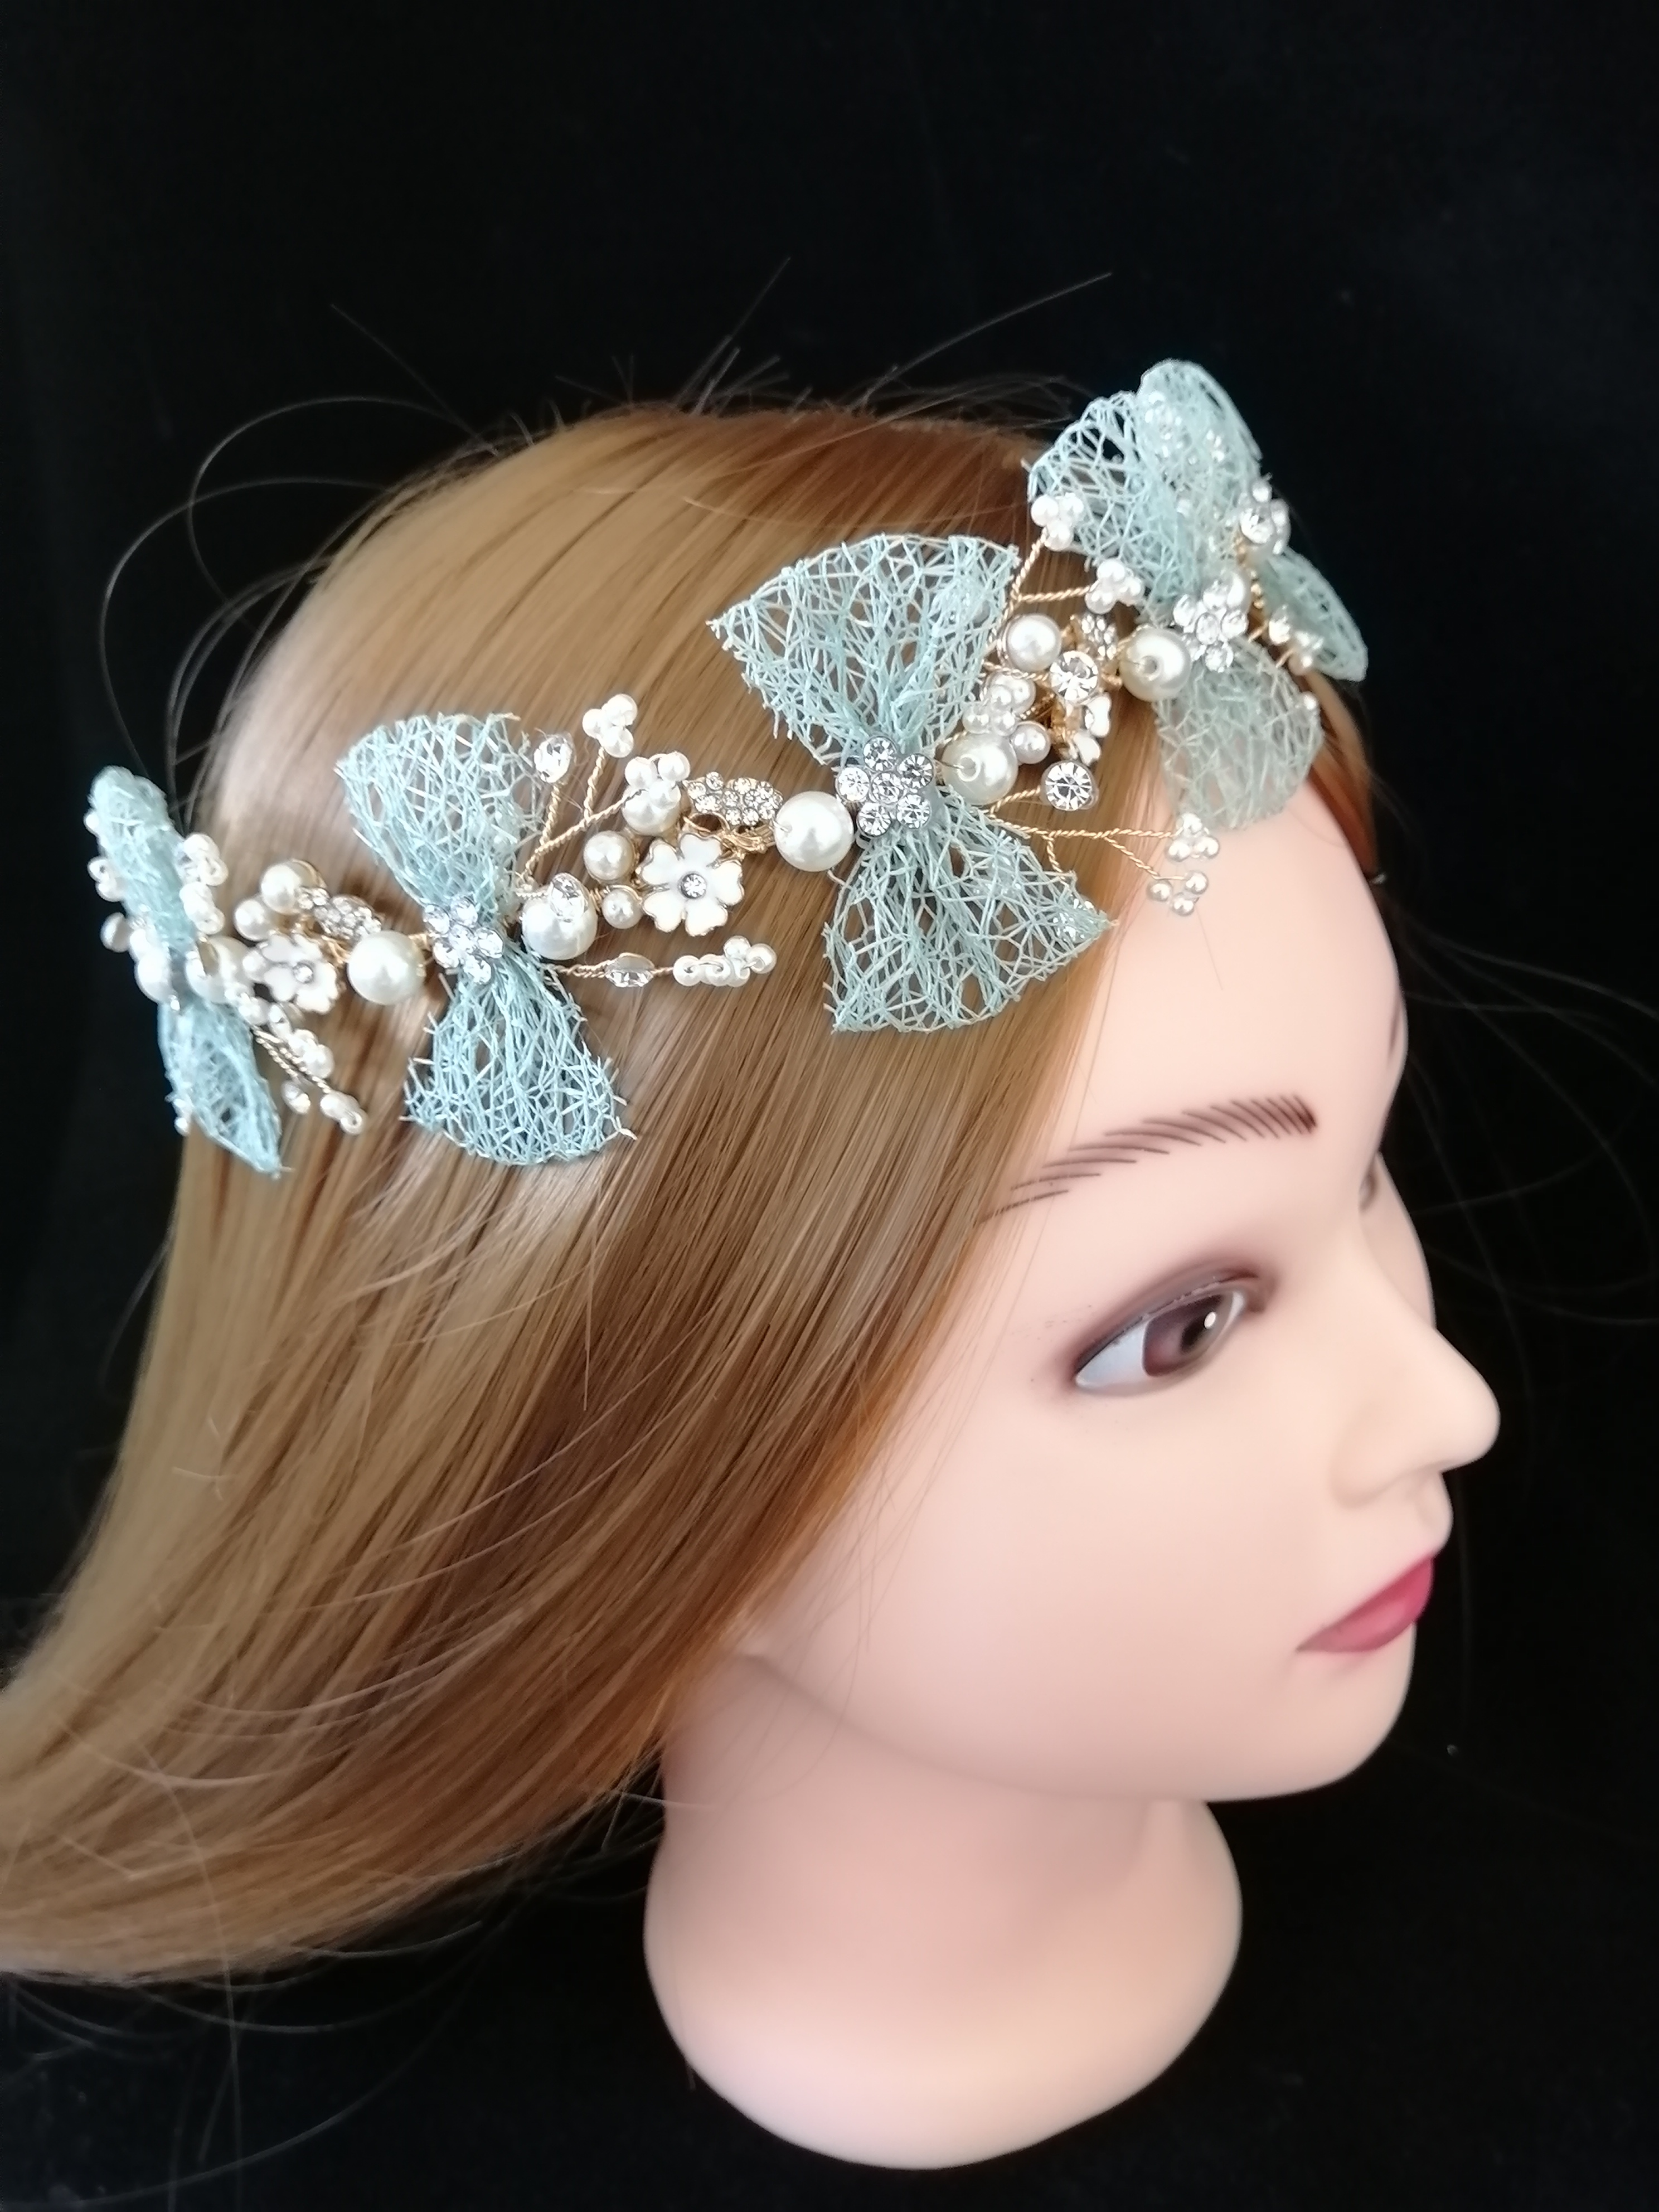 Superior Green Bow Bridal Tiaras Headbands Hairwear Chaplet Hairdressing  Jewelry Accessories,Luxury Korean Wedding Combs